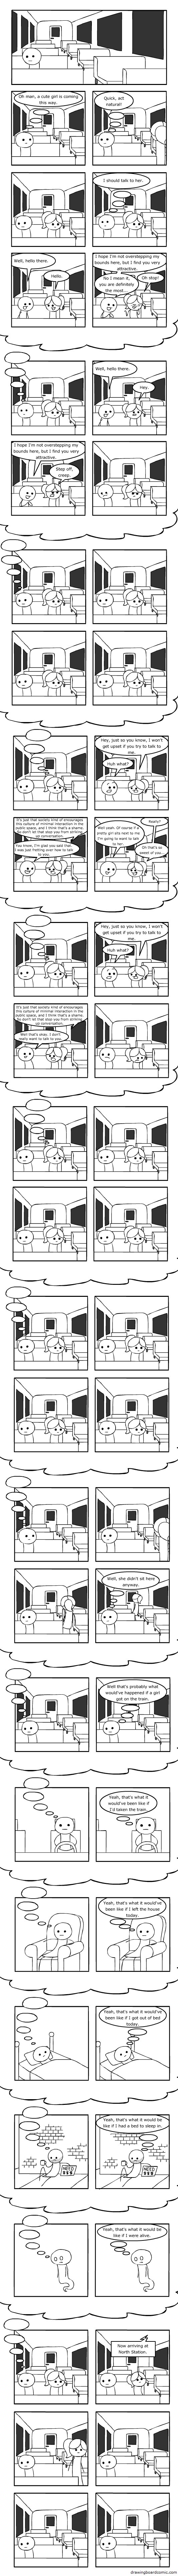 Thought Bubbles. Found this on StumbleUpon and had to share it. Pretty sure I go through this daily.. Gurk, act natural) mane rm not my bounds here, but I mod y